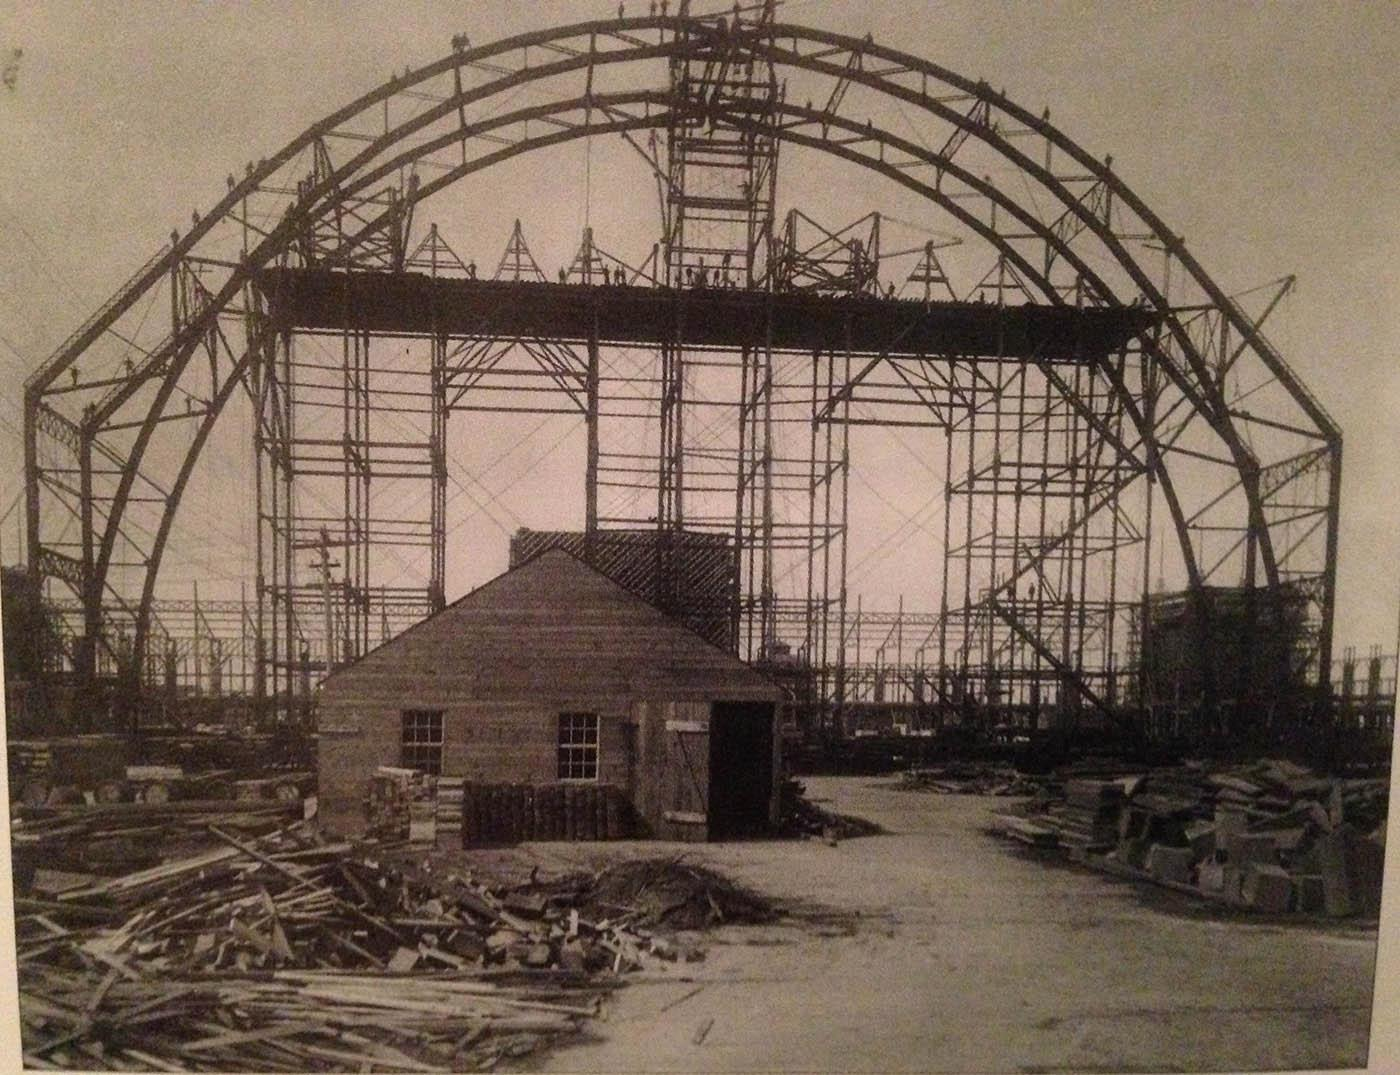 A shack standing amidst the construction of the 1893 World's Columbian Exposition in Chicago